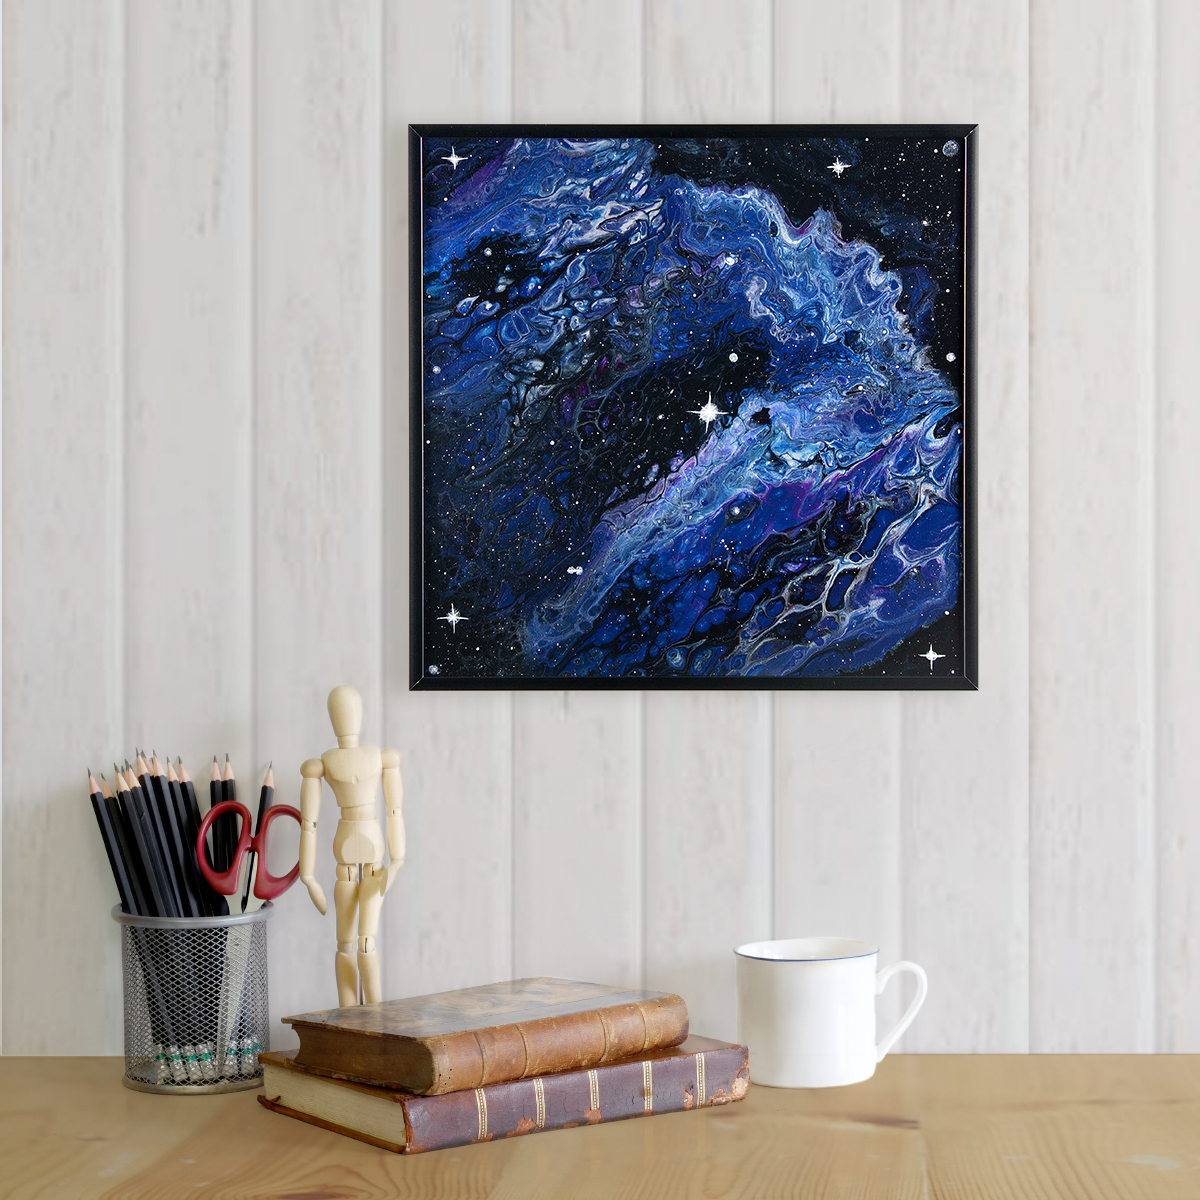 Waterfall Nebula - Abstract Acrylic Pour Painting featuring Deep Space by Heather Miller, WhiteRosesArt